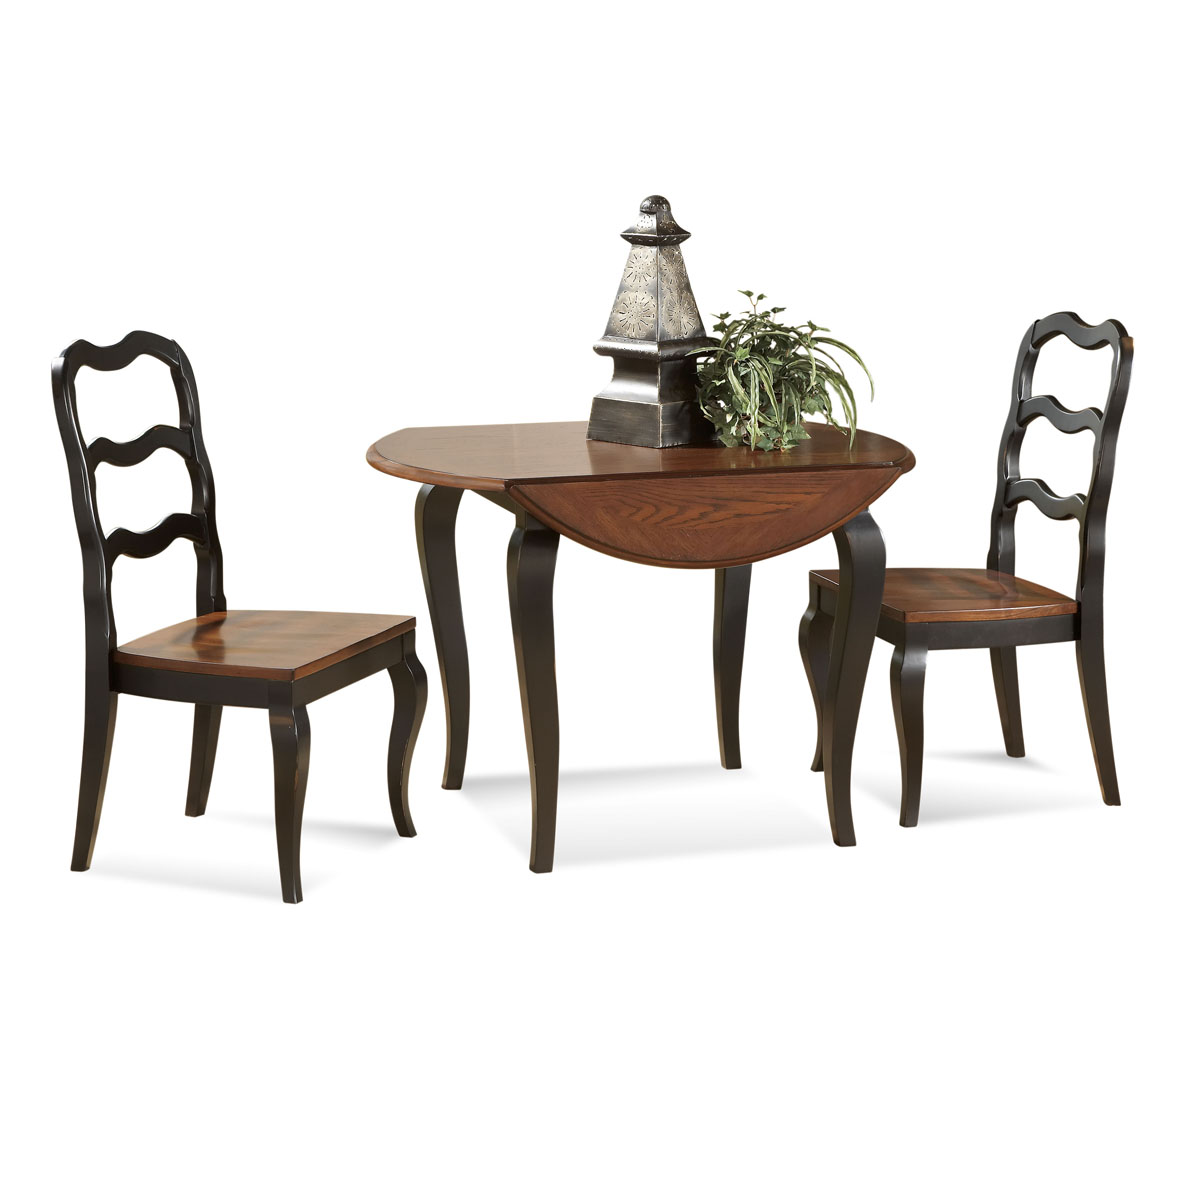 5 styles of drop leaf dining table for small spaces for Drop leaf dining table